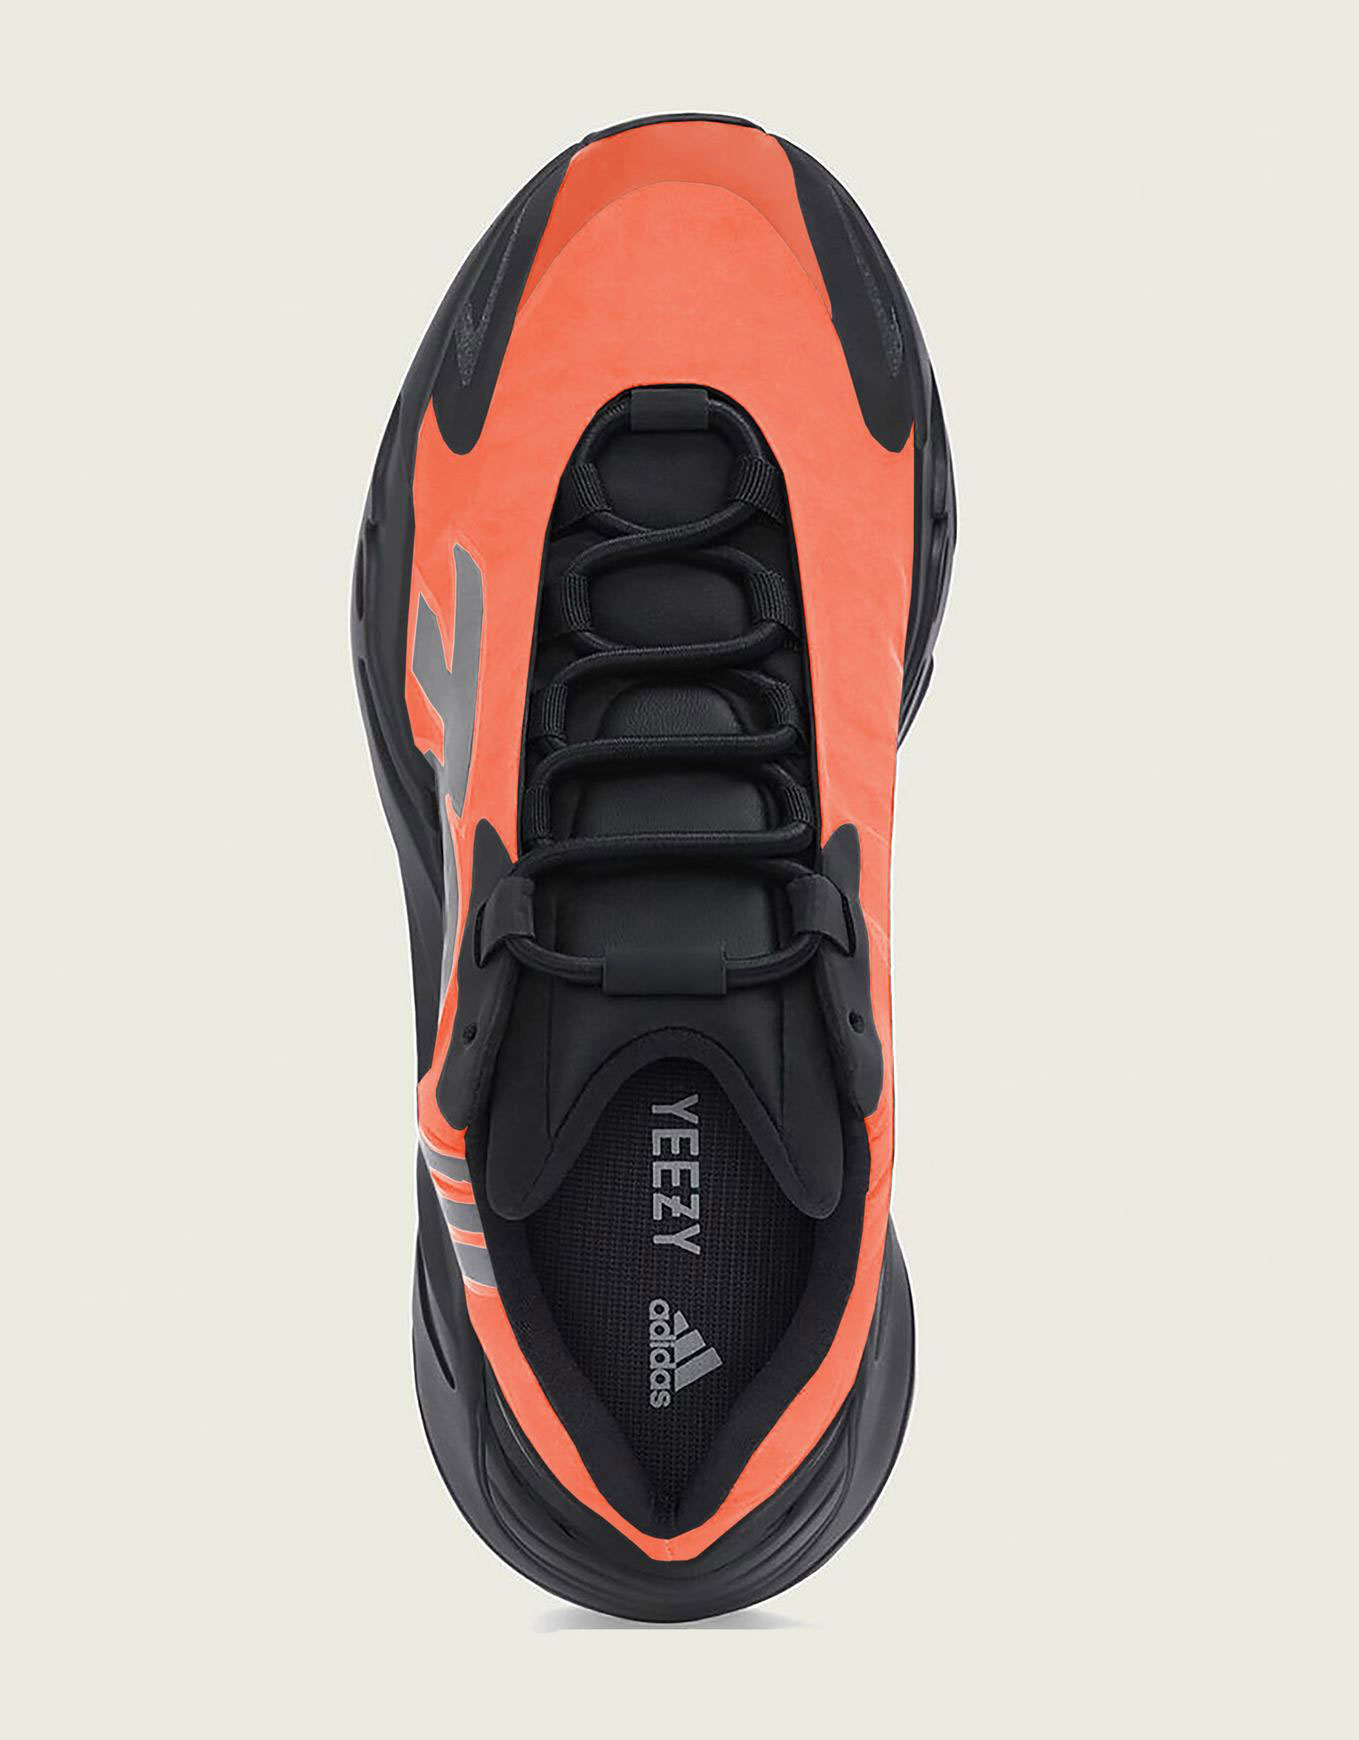 yeezy-700-mnvn-orange-where-to-buy